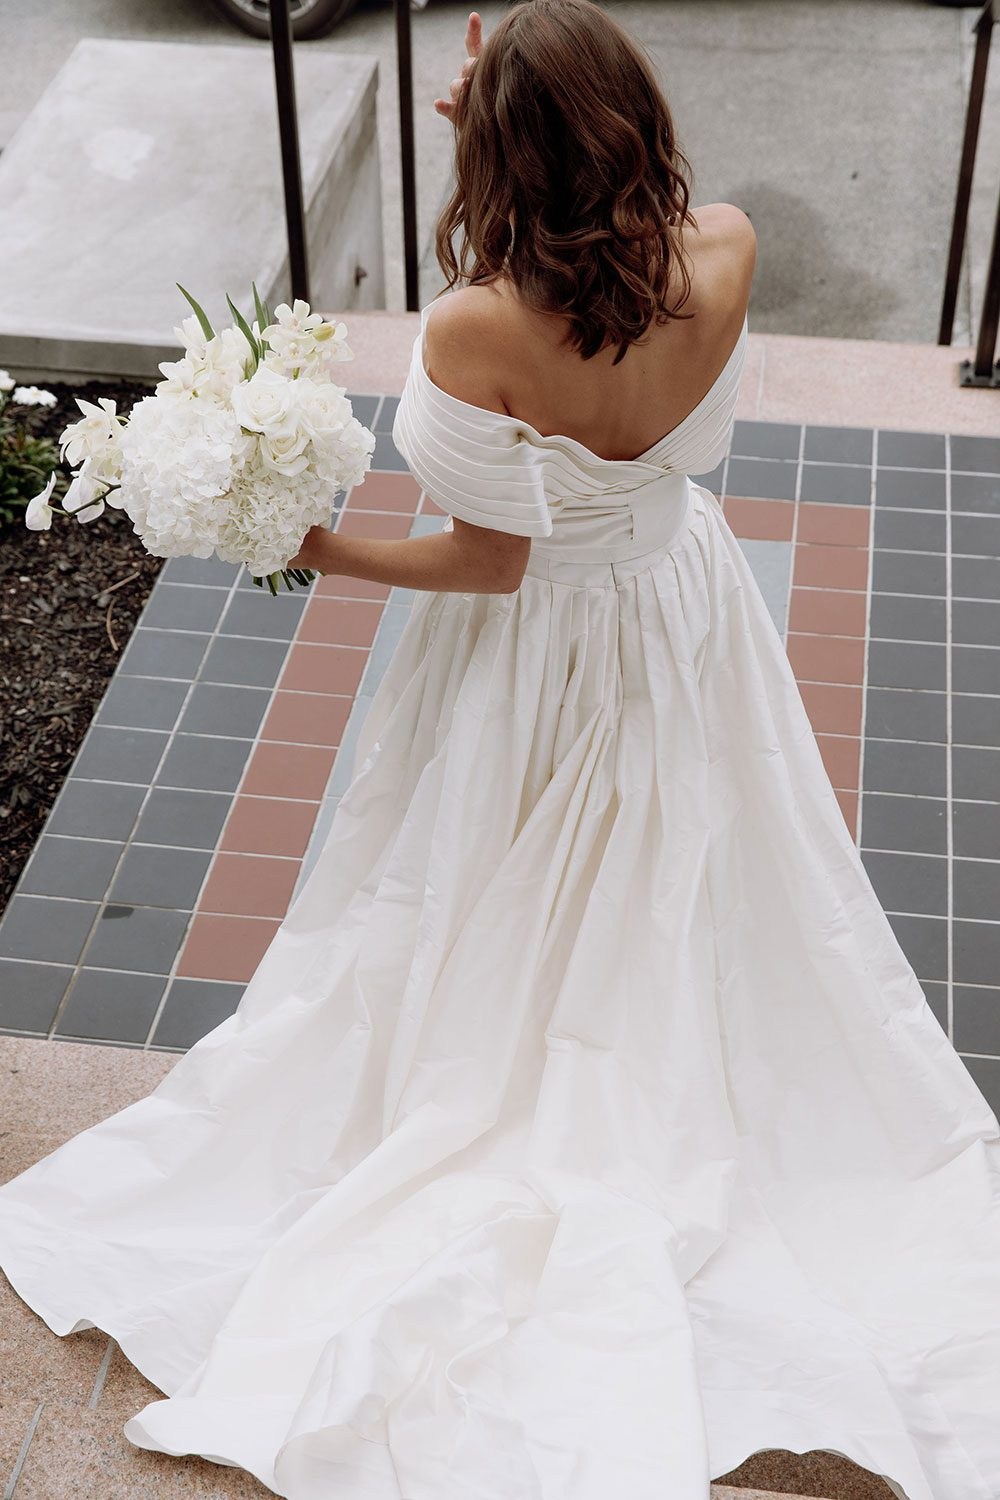 Bride wearing bespoke off shoulder bodice made with silk dupion and long train by NZ wedding dress maker Vinka Designs - back of dress and bouquet